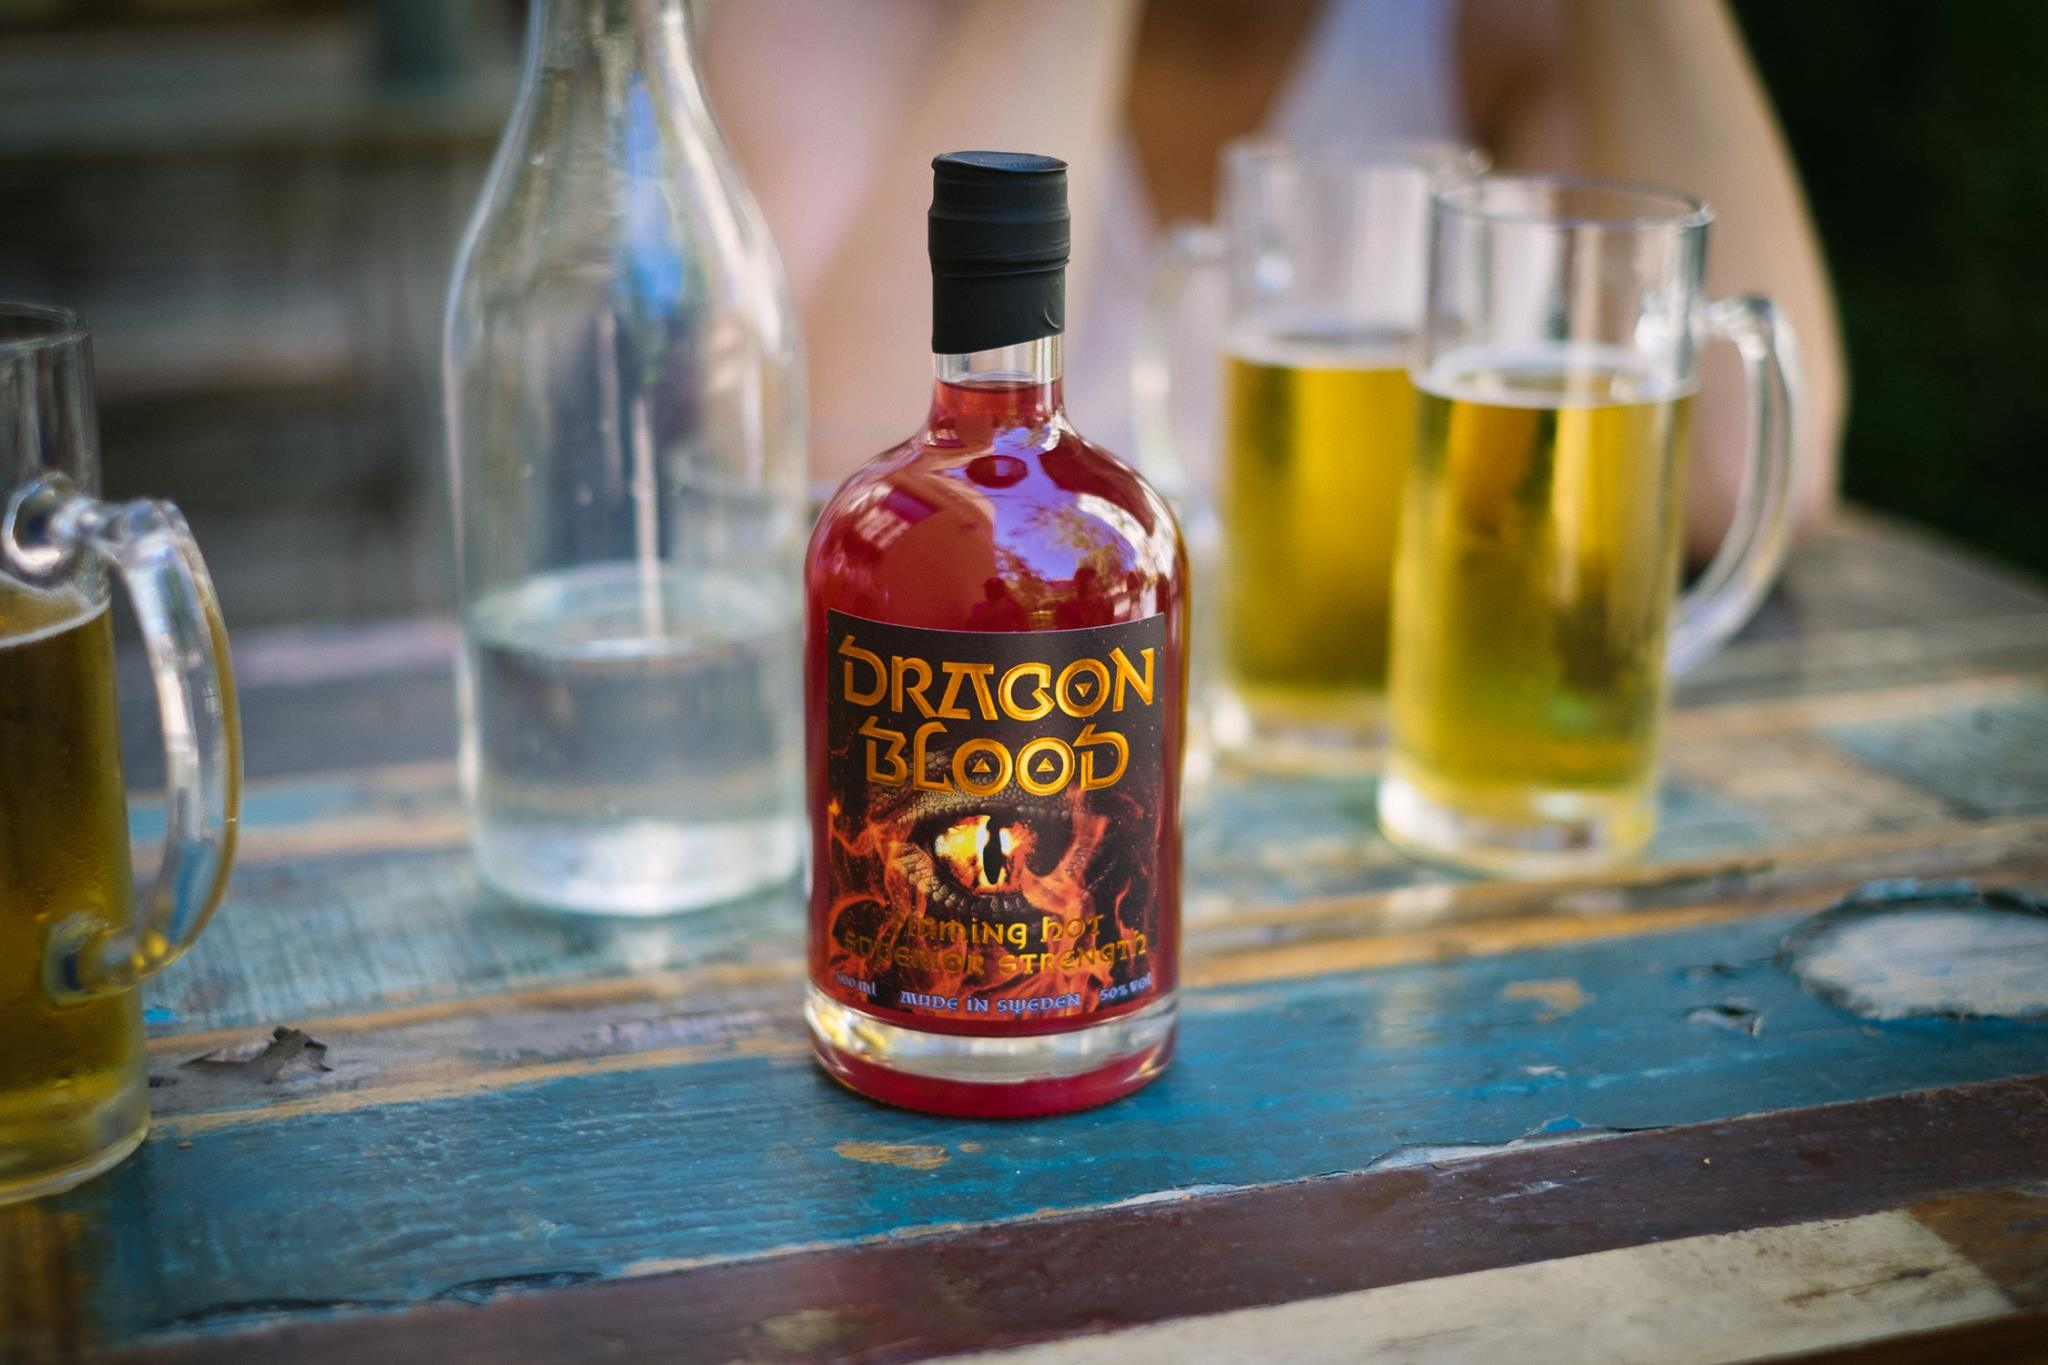 Dragon Blood and beer